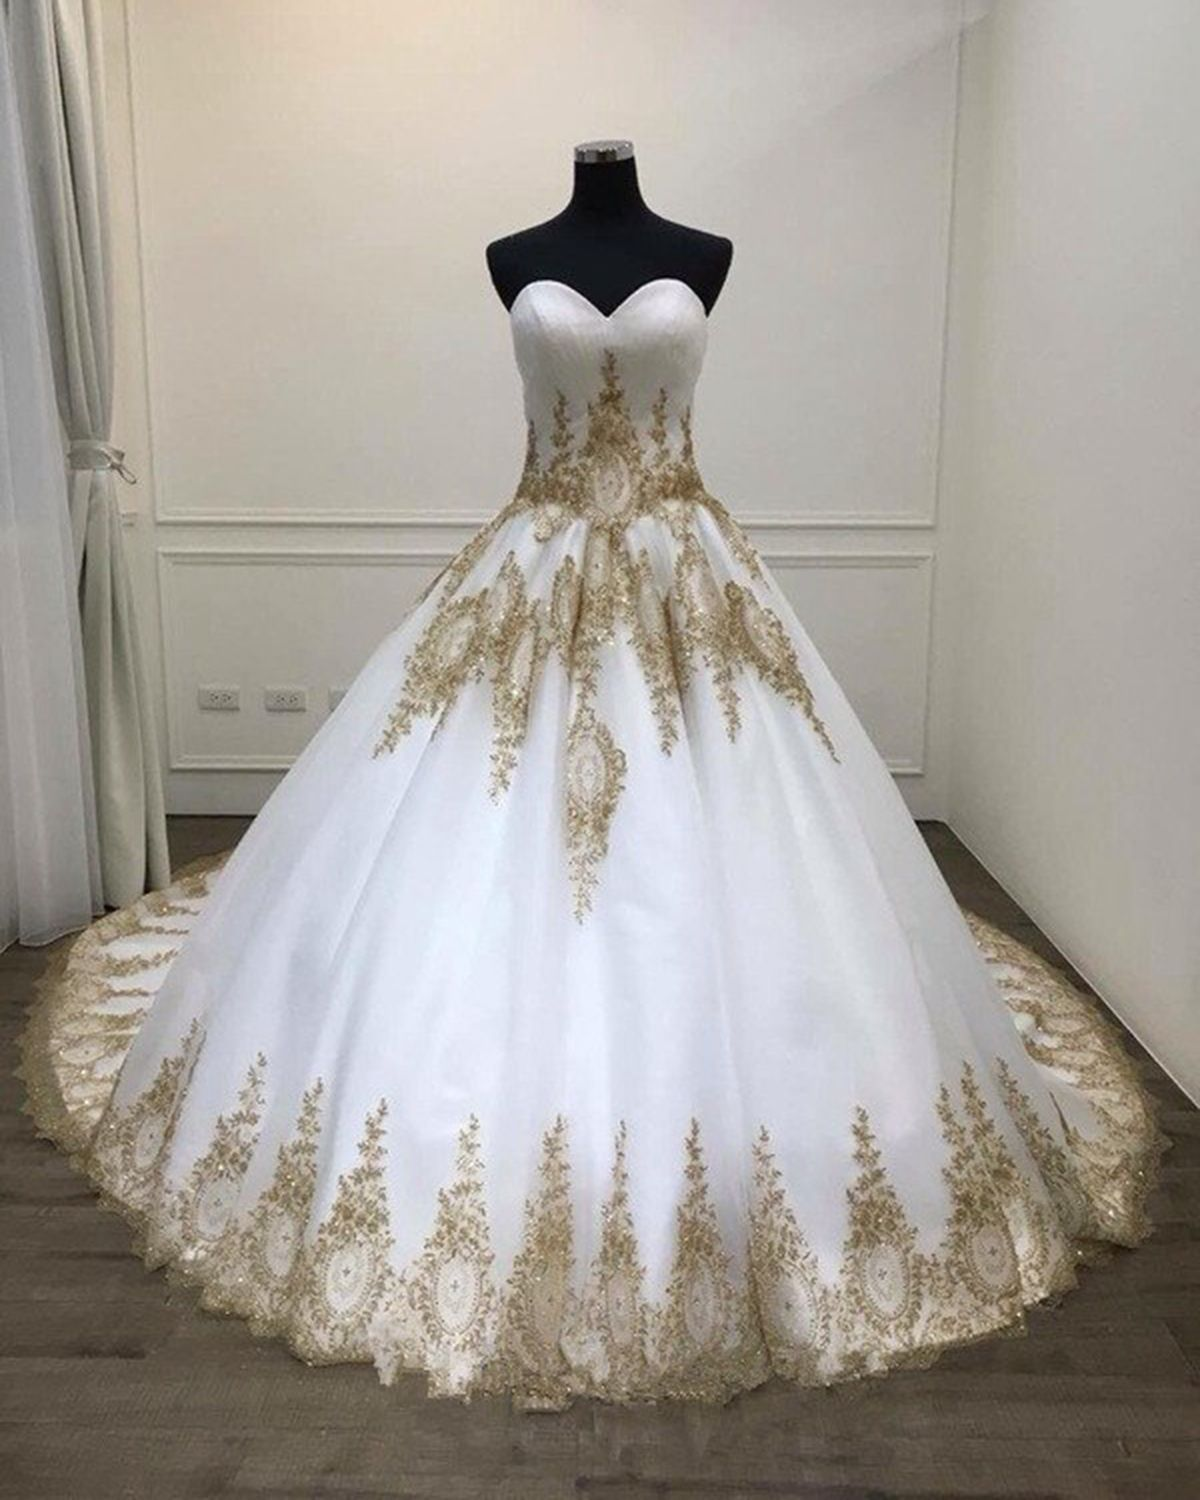 Unique White Tulle Vintage Sweetheart Formal Prom Dress With Applique From Sweetheart Dress Big Wedding Dresses White Ball Gowns Gowns